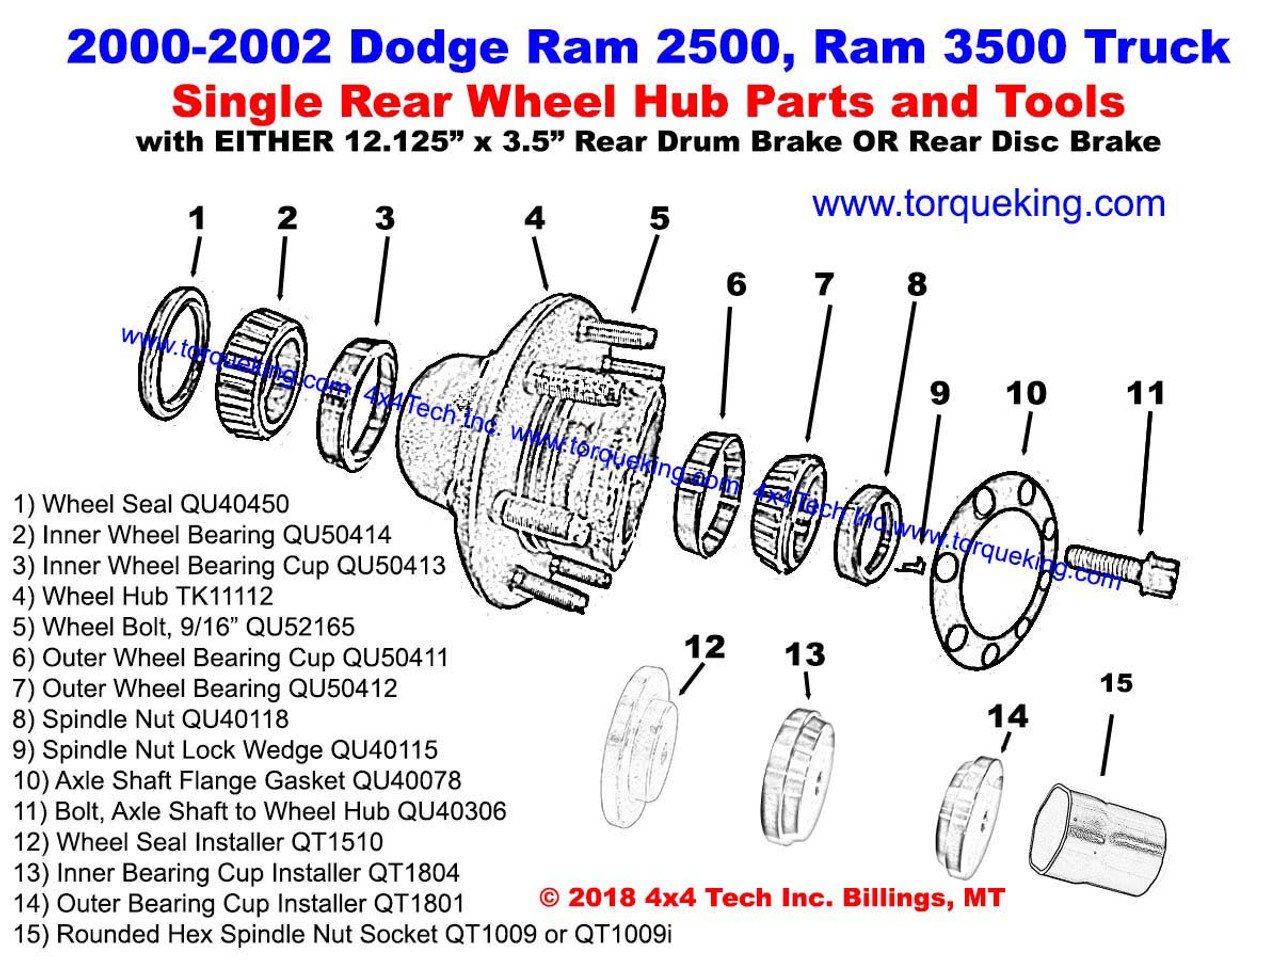 Exploded View for 2000, 2001, 2002, Dodge Ram 2500 and Ram 3500 Trucks